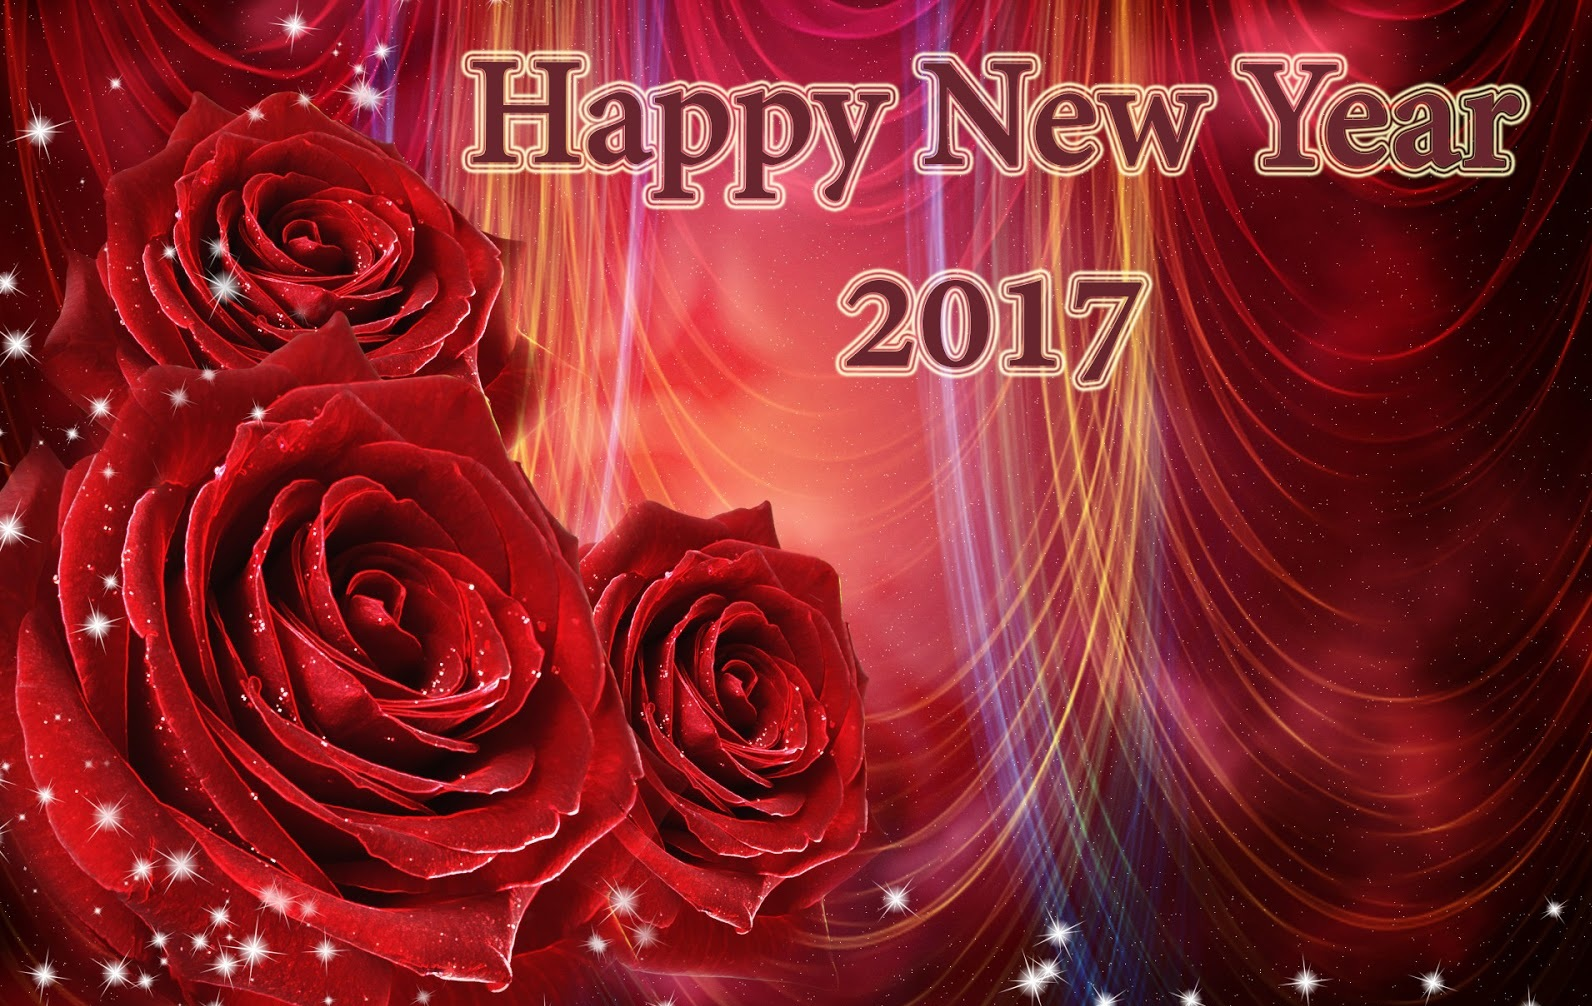 Happy New Year 2017 Images Wallpapers Quotes Wishes